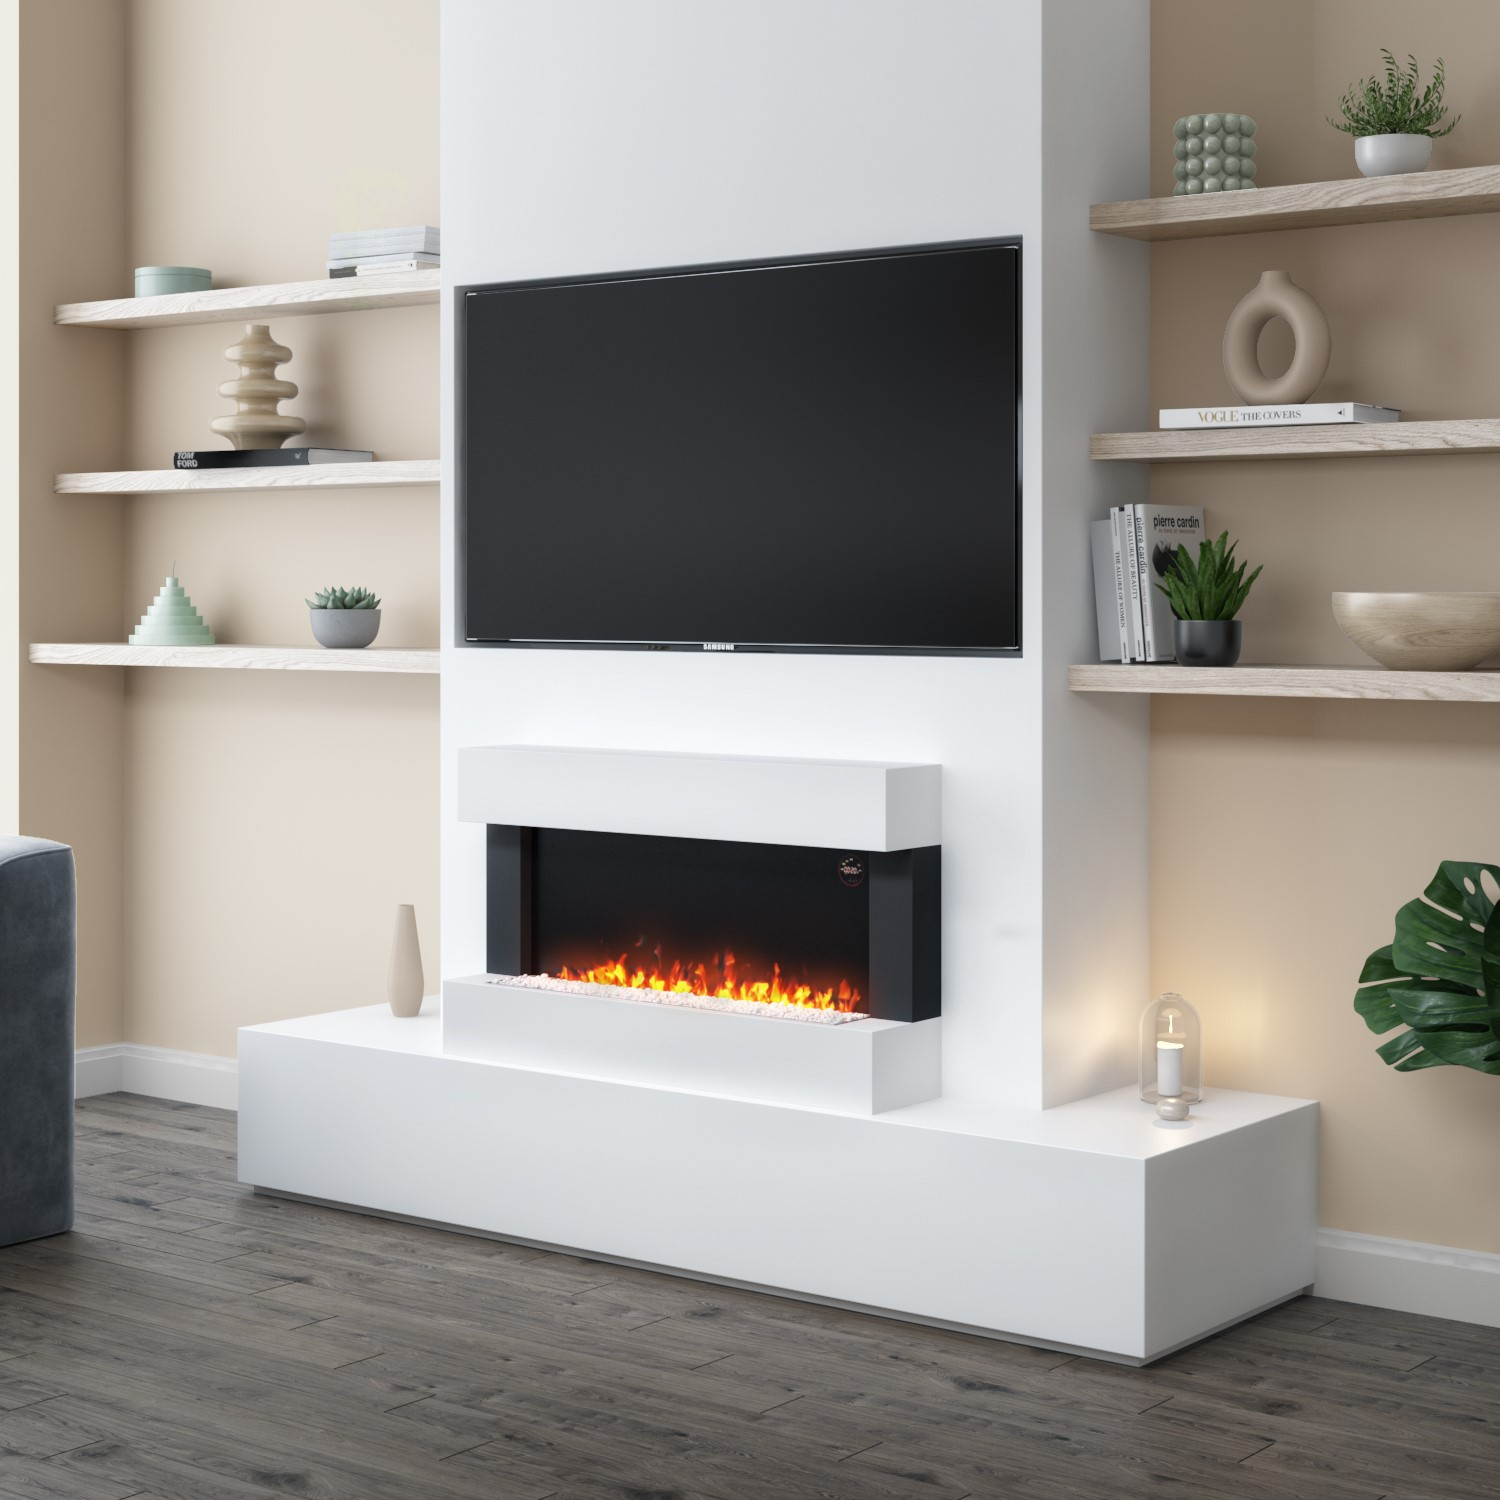 Amberglo White Wall Mounted Electric Fireplace Suite With Logs